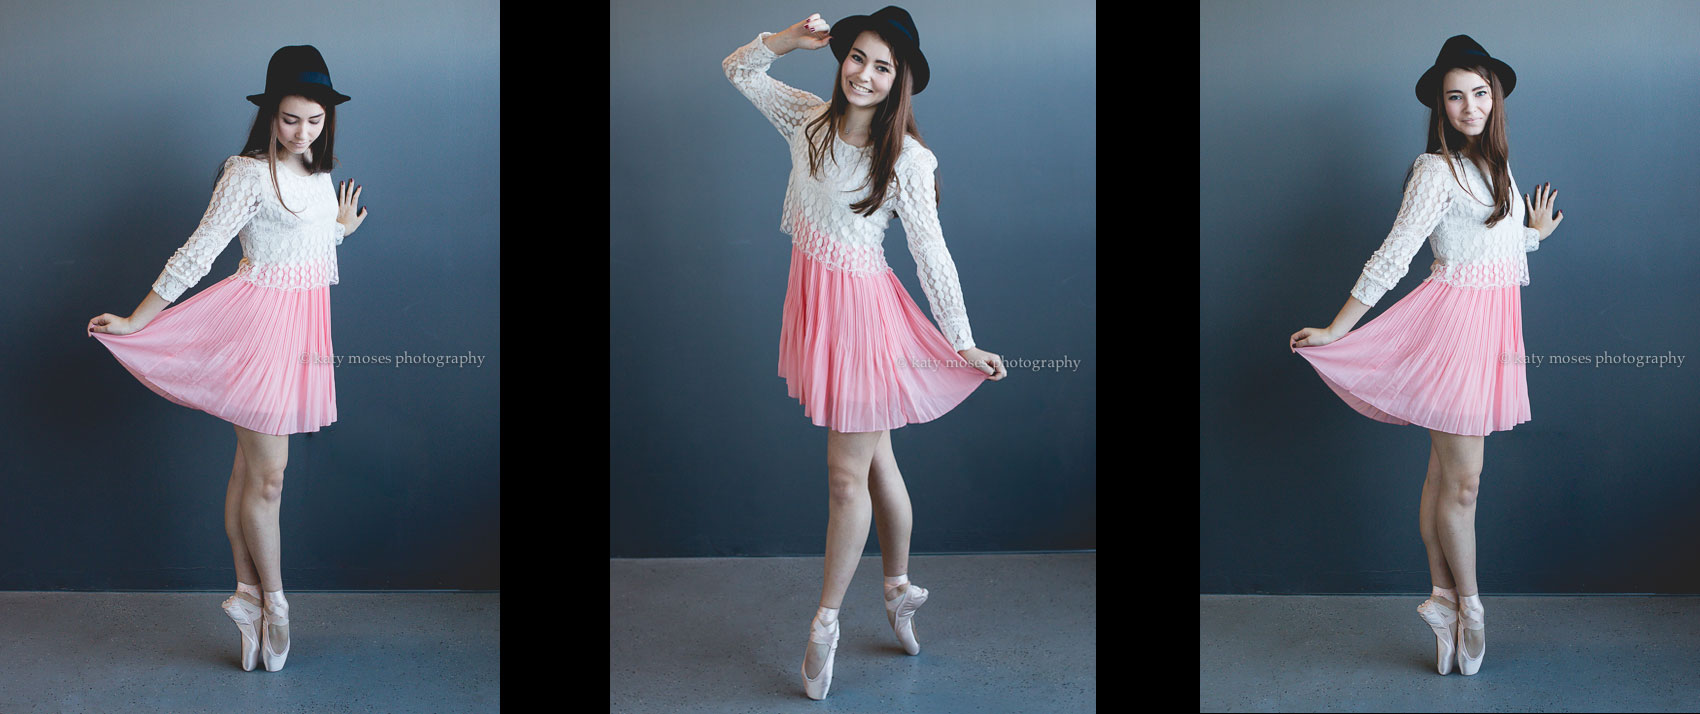 high school senior ballerina